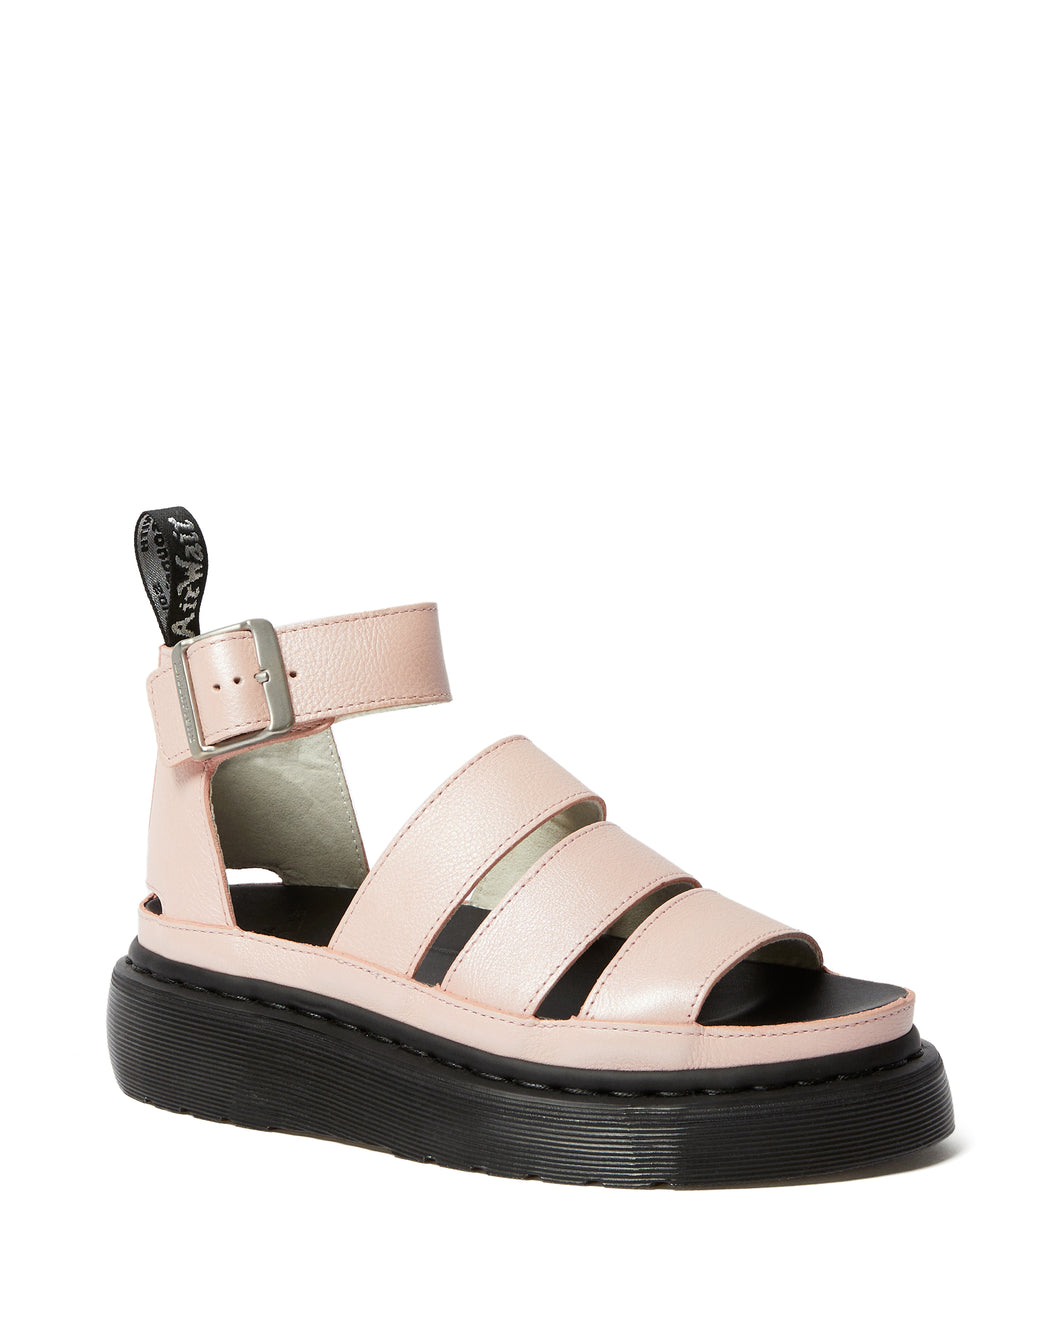 CLARISSA ll METALLIC LEATHER PLATFORM SANDAL